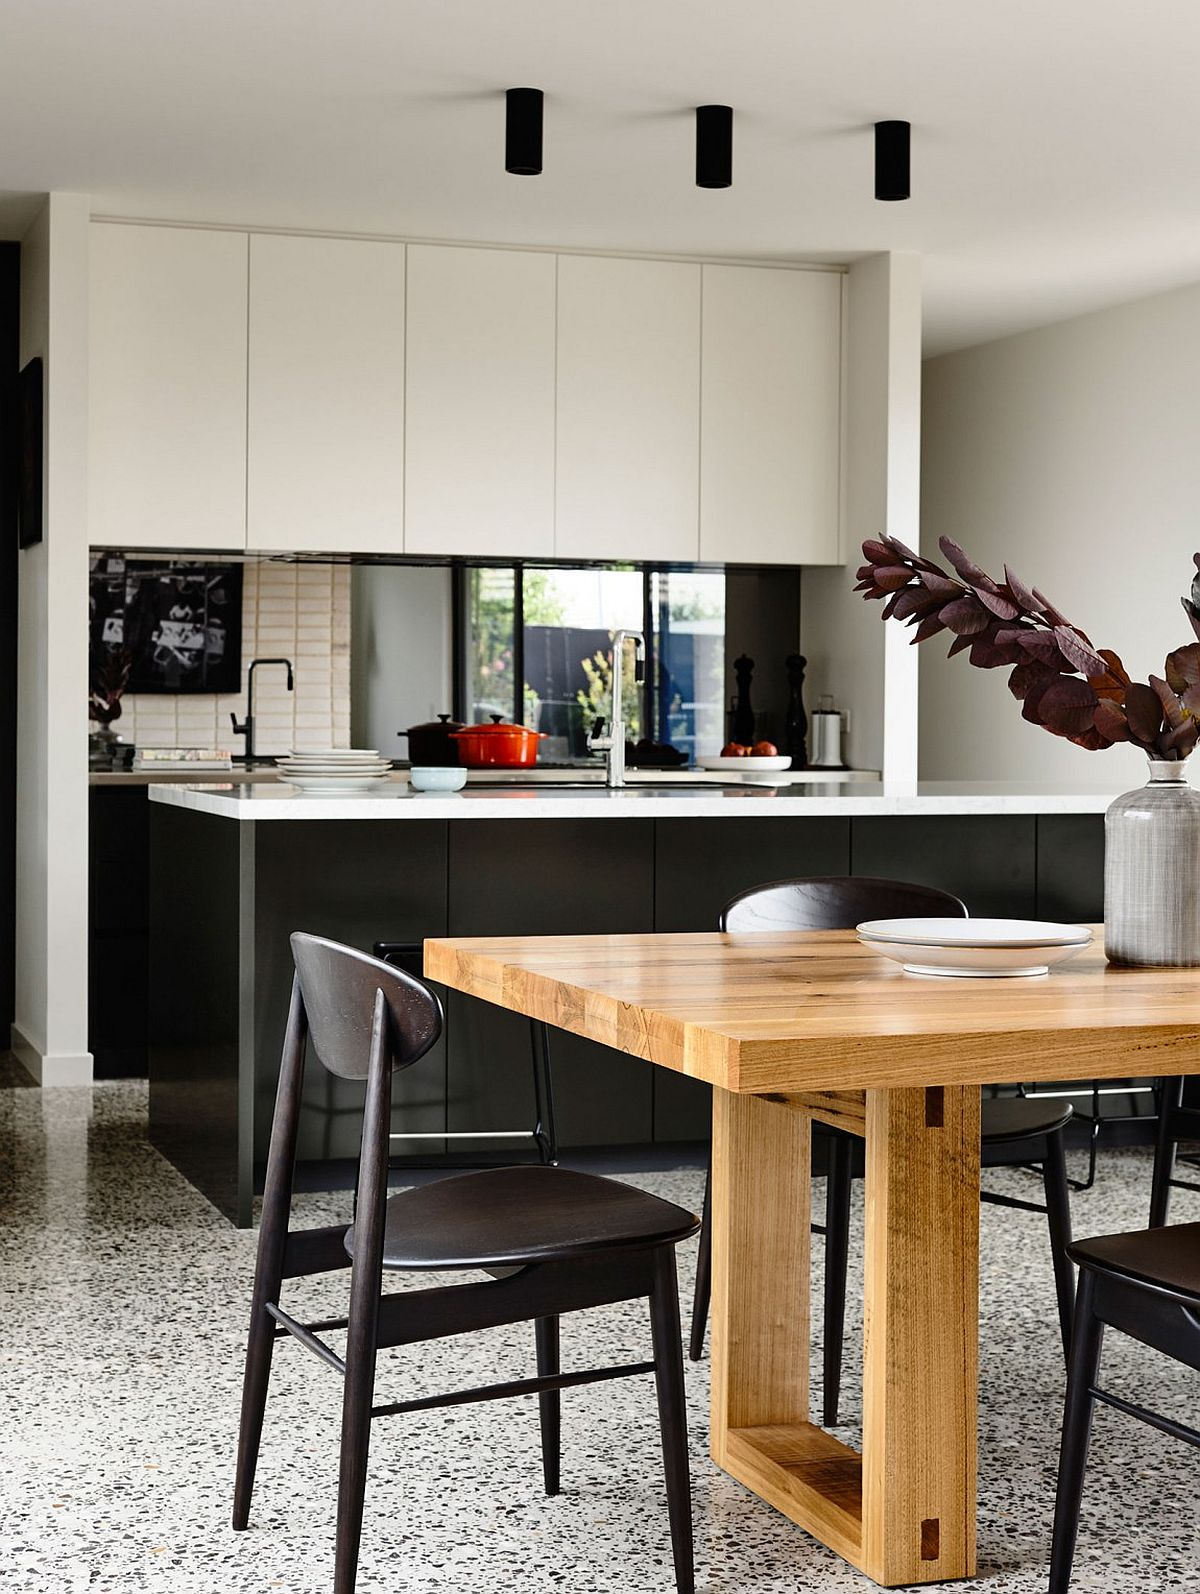 Kitchen and dining space of the Alphington House nestled in the single story pavilion structure